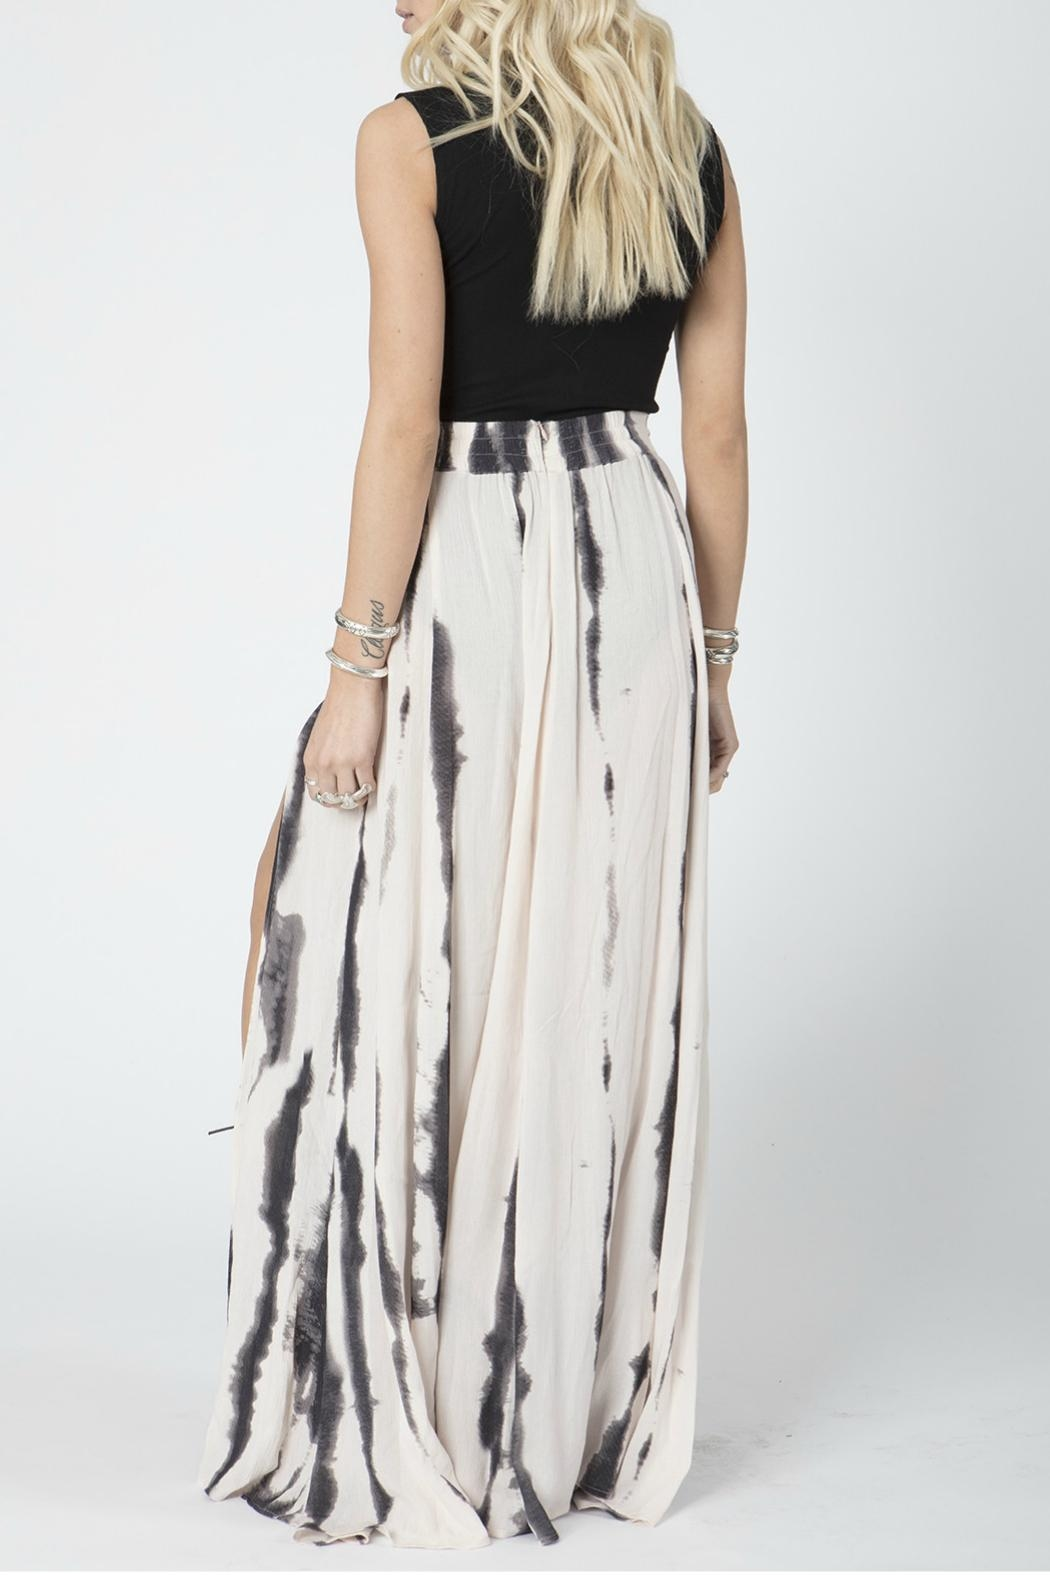 Stillwater Slate Tie Dye Skirt - Side Cropped Image